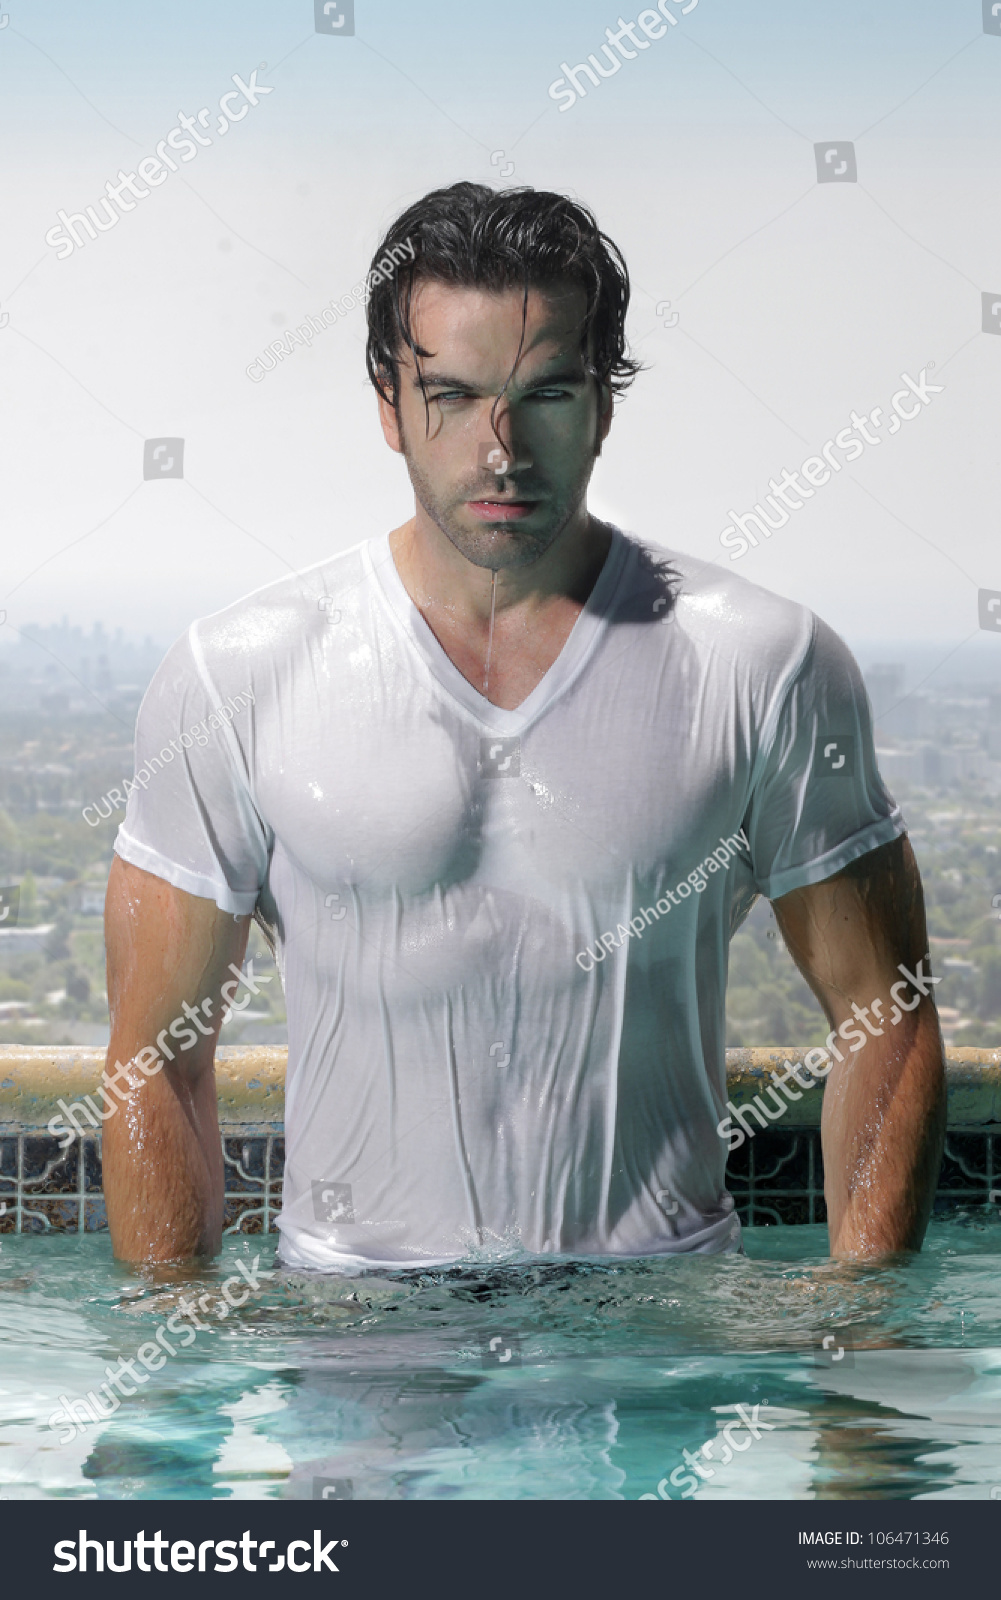 Fashion portrait gorgeous male model soaked stock photo for Wearing t shirt in swimming pool